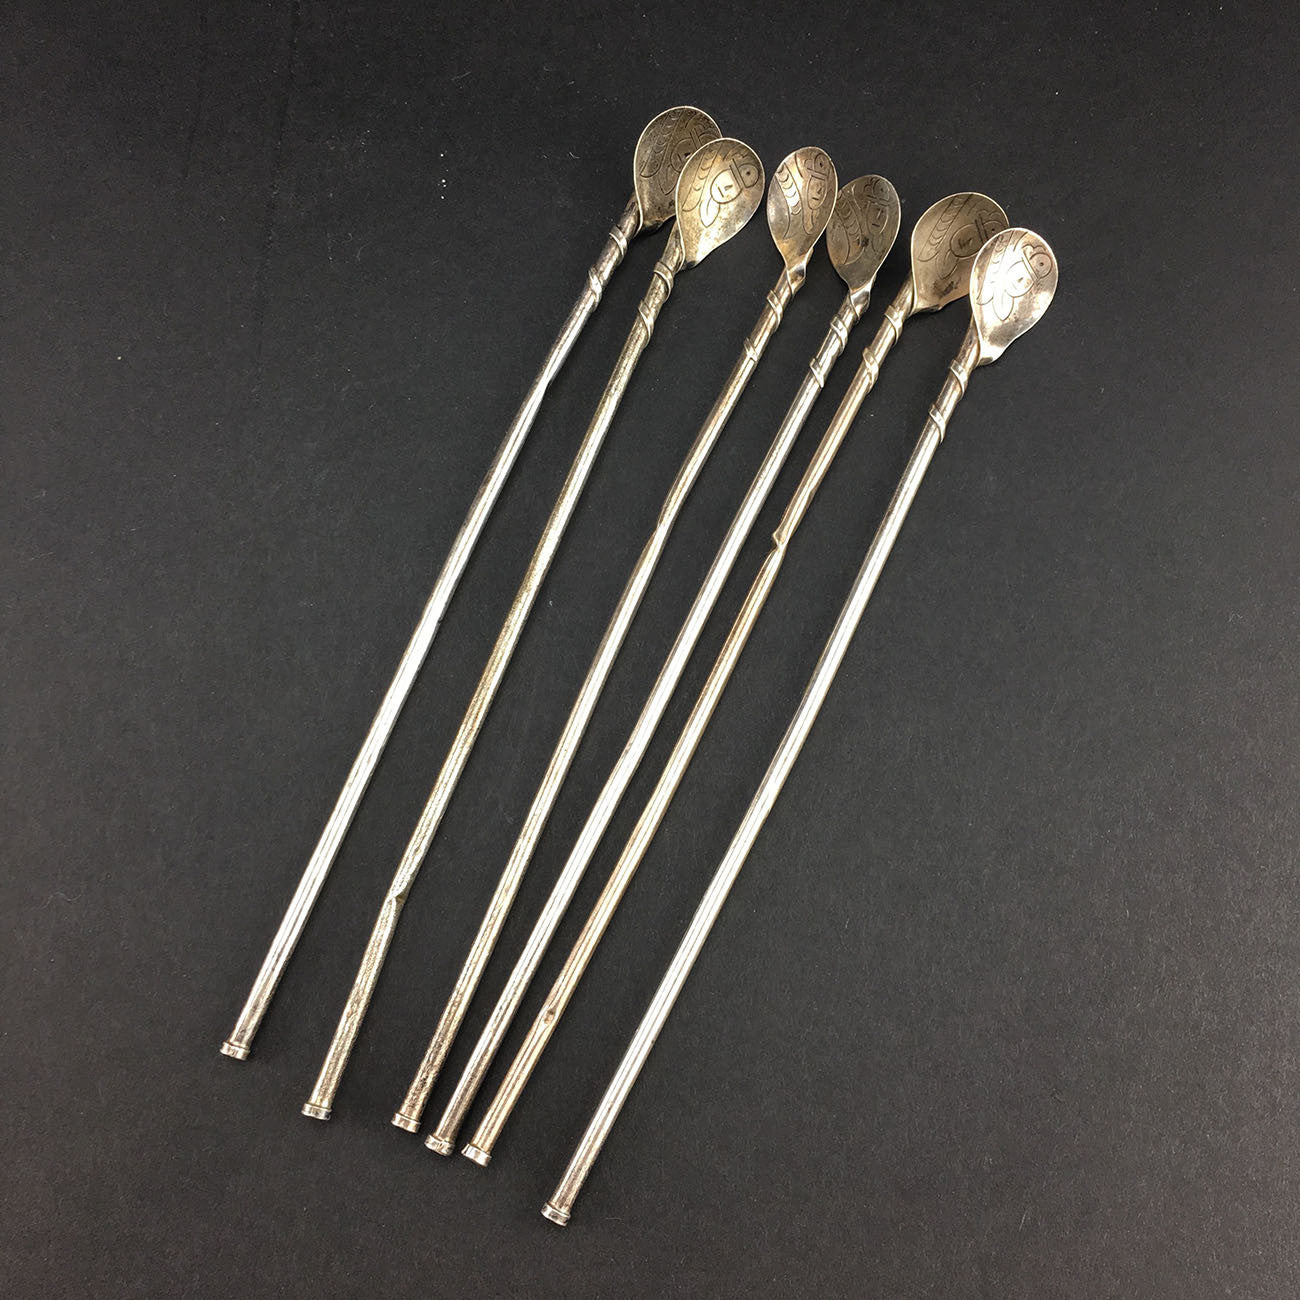 Retro Taxco Sterling Silver Set of 6 Iced Tea Spoons